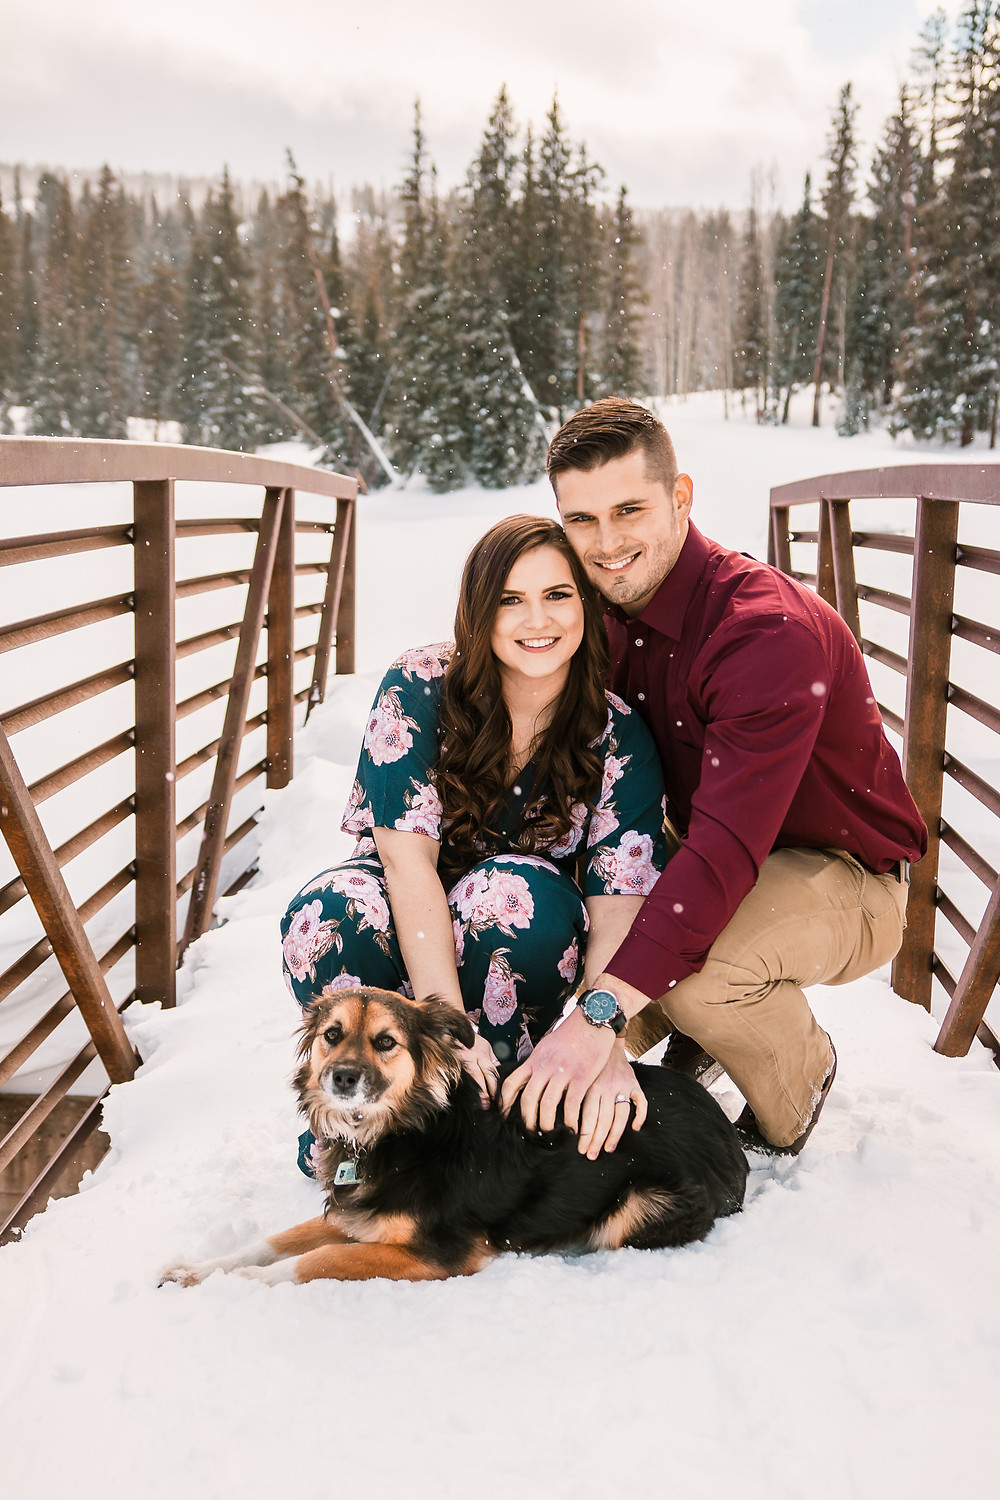 Winter snow falling engagement photos with dog Colorado Mountains snowy trees Grand Mesa Lakes lodge